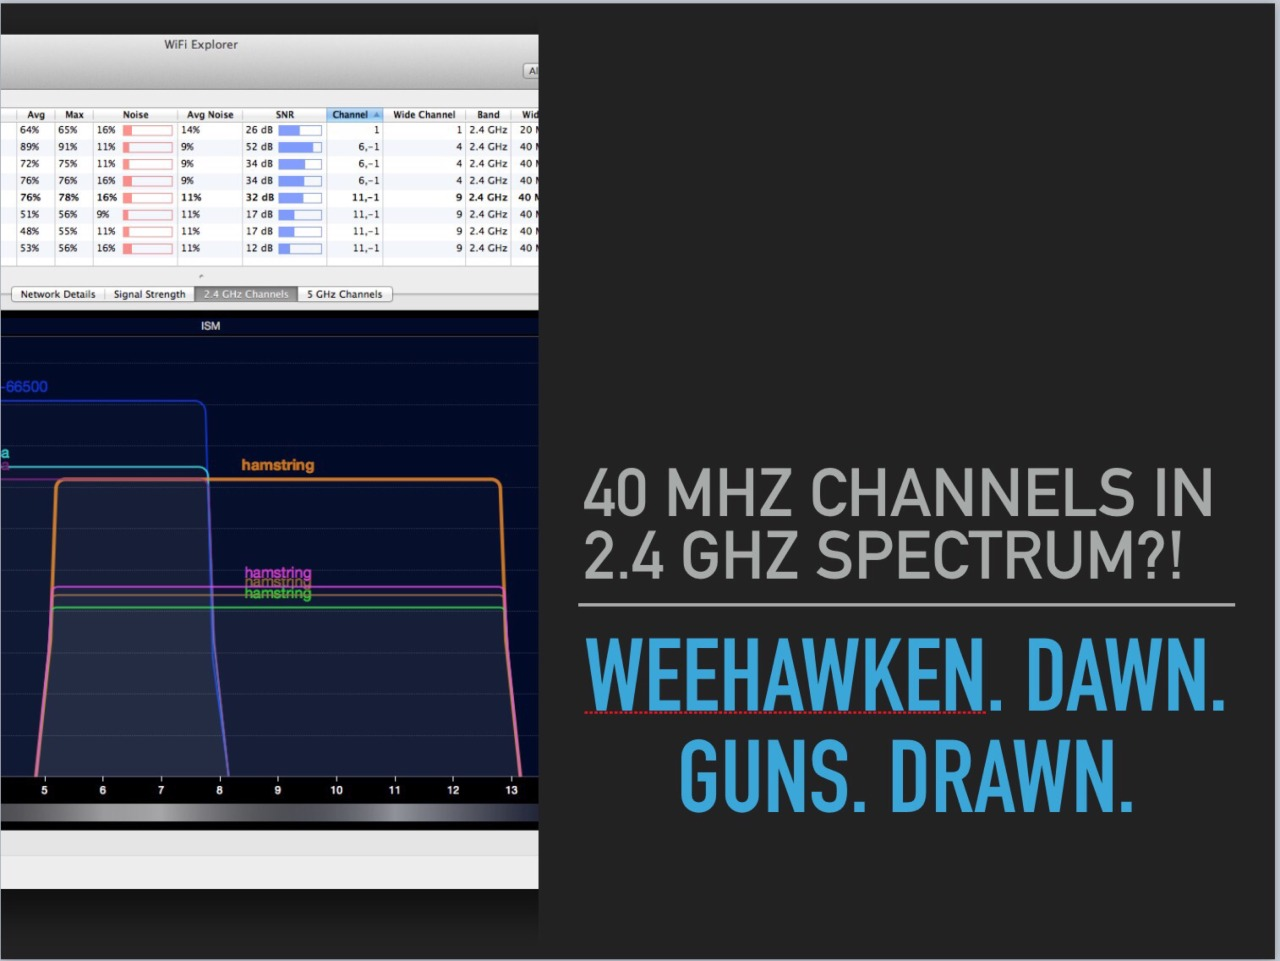 40MHz Channel Widths in 2.4?! Weehawken, Dawn. Guns, Drawn.